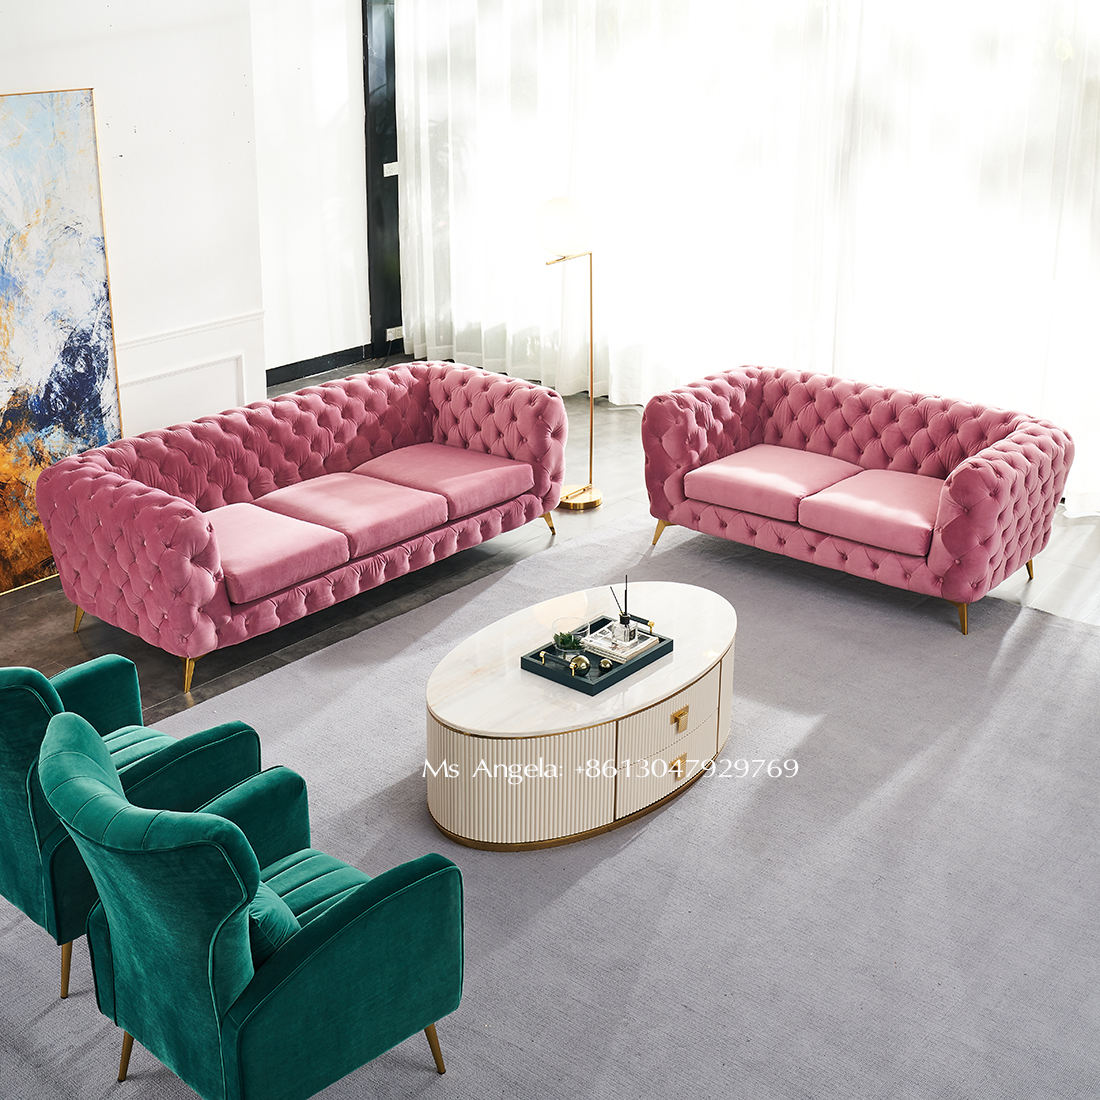 modern luxury furniture stainless steel leg pink velvet chesterfield sofas living room couch tufted sectional sofa